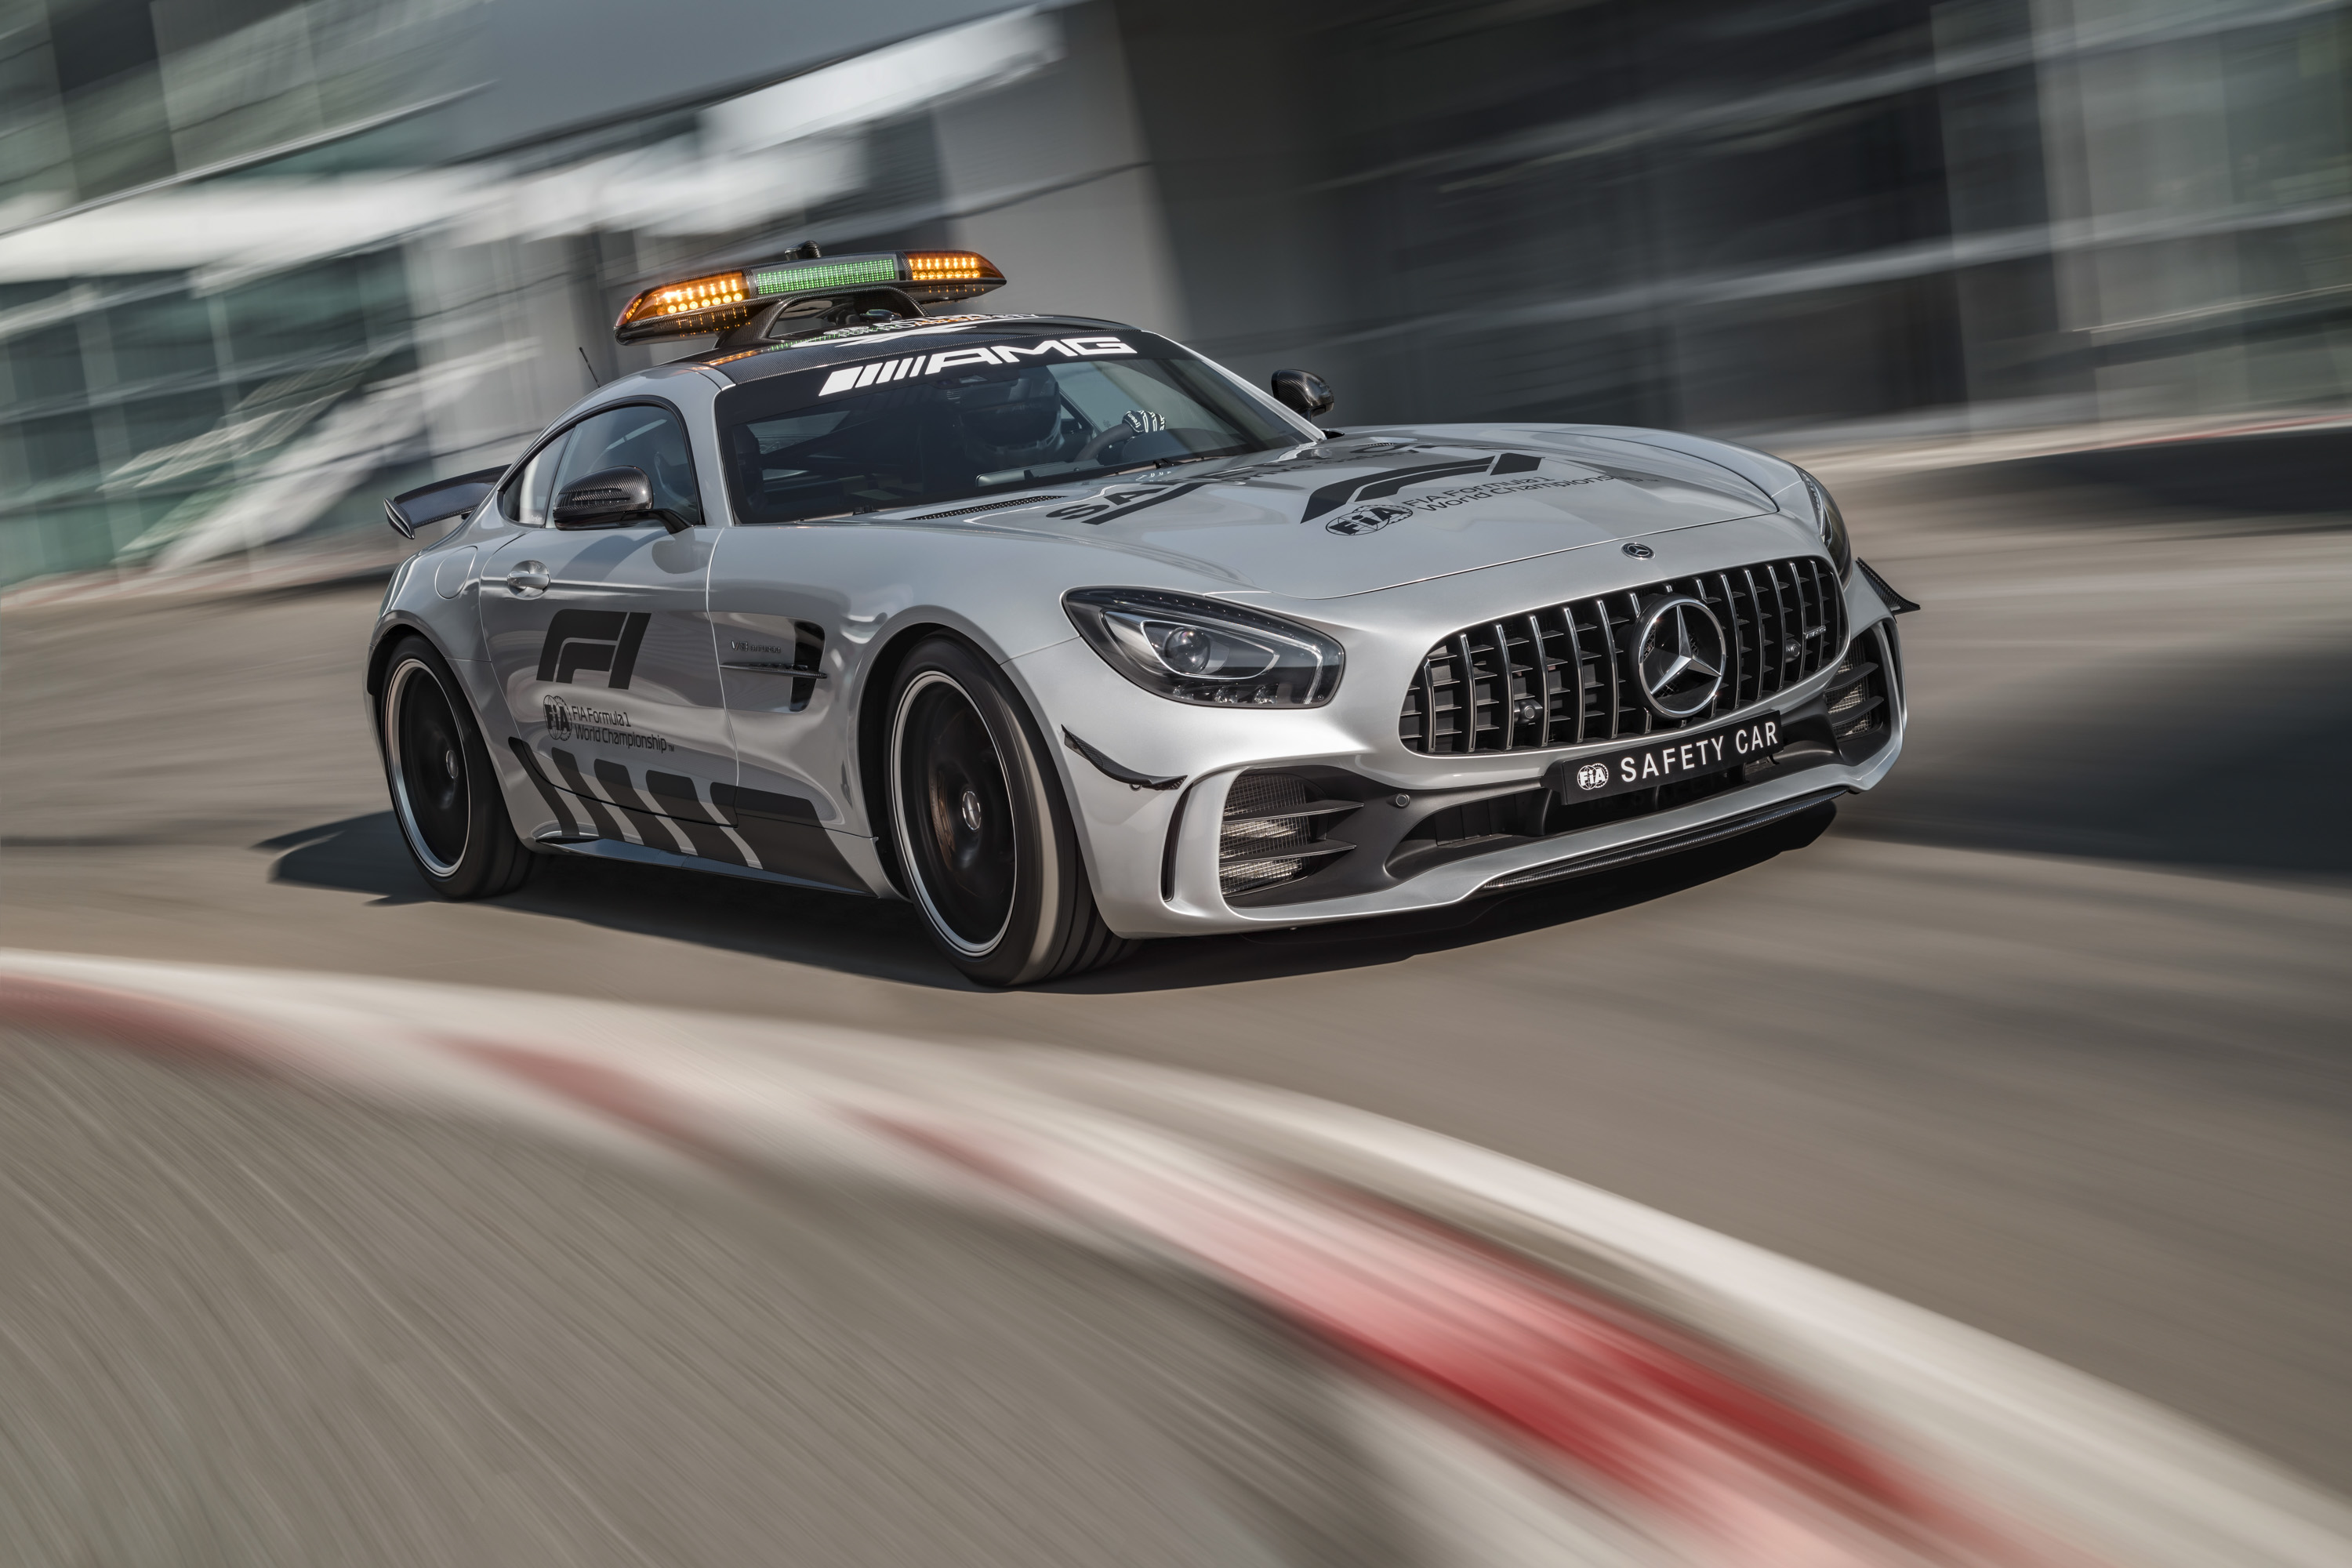 2018 Mercedes-AMG GT R Formula 1 Safety Car | Top Speed